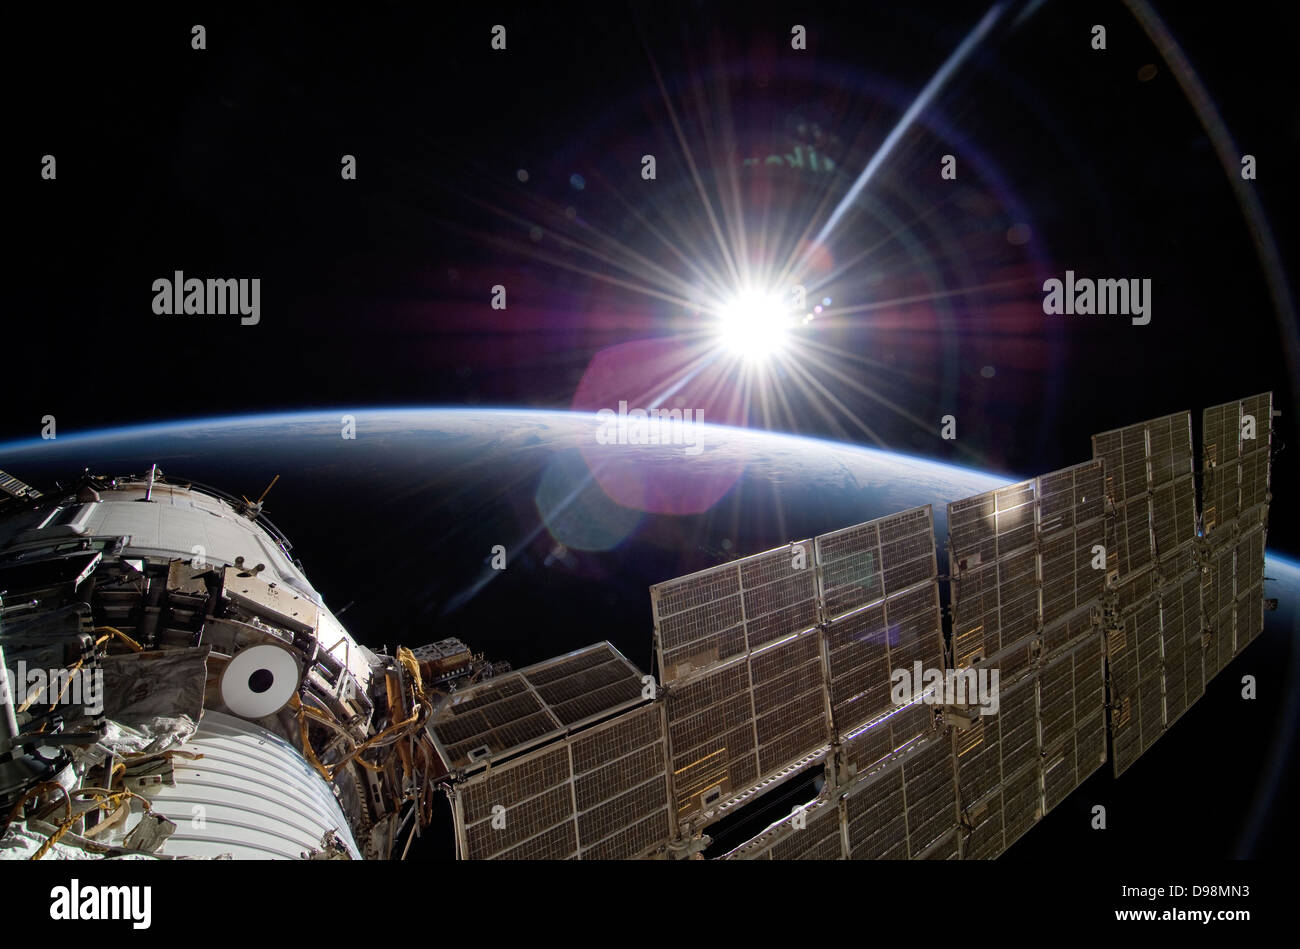 22 November 2009.  The bright sun greets the International Space Station. - Stock Image